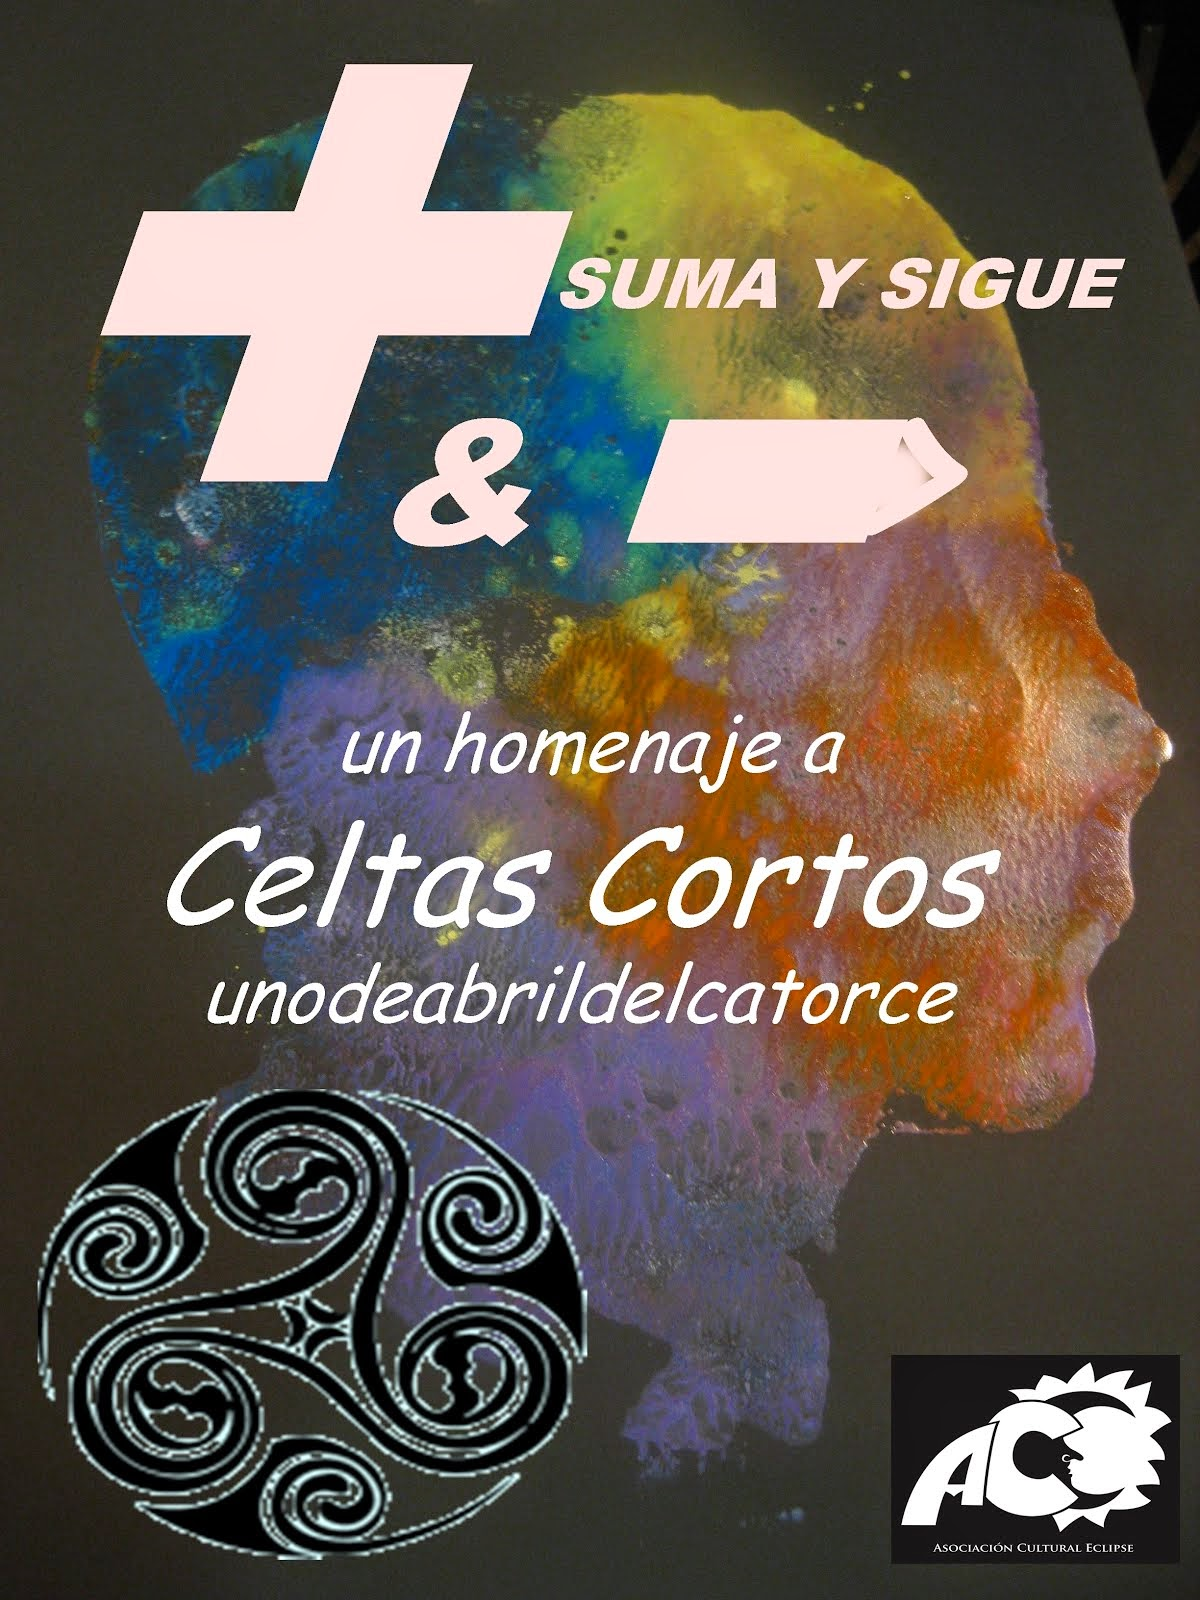 SUMA Y SIGUE, Celtas Cortos